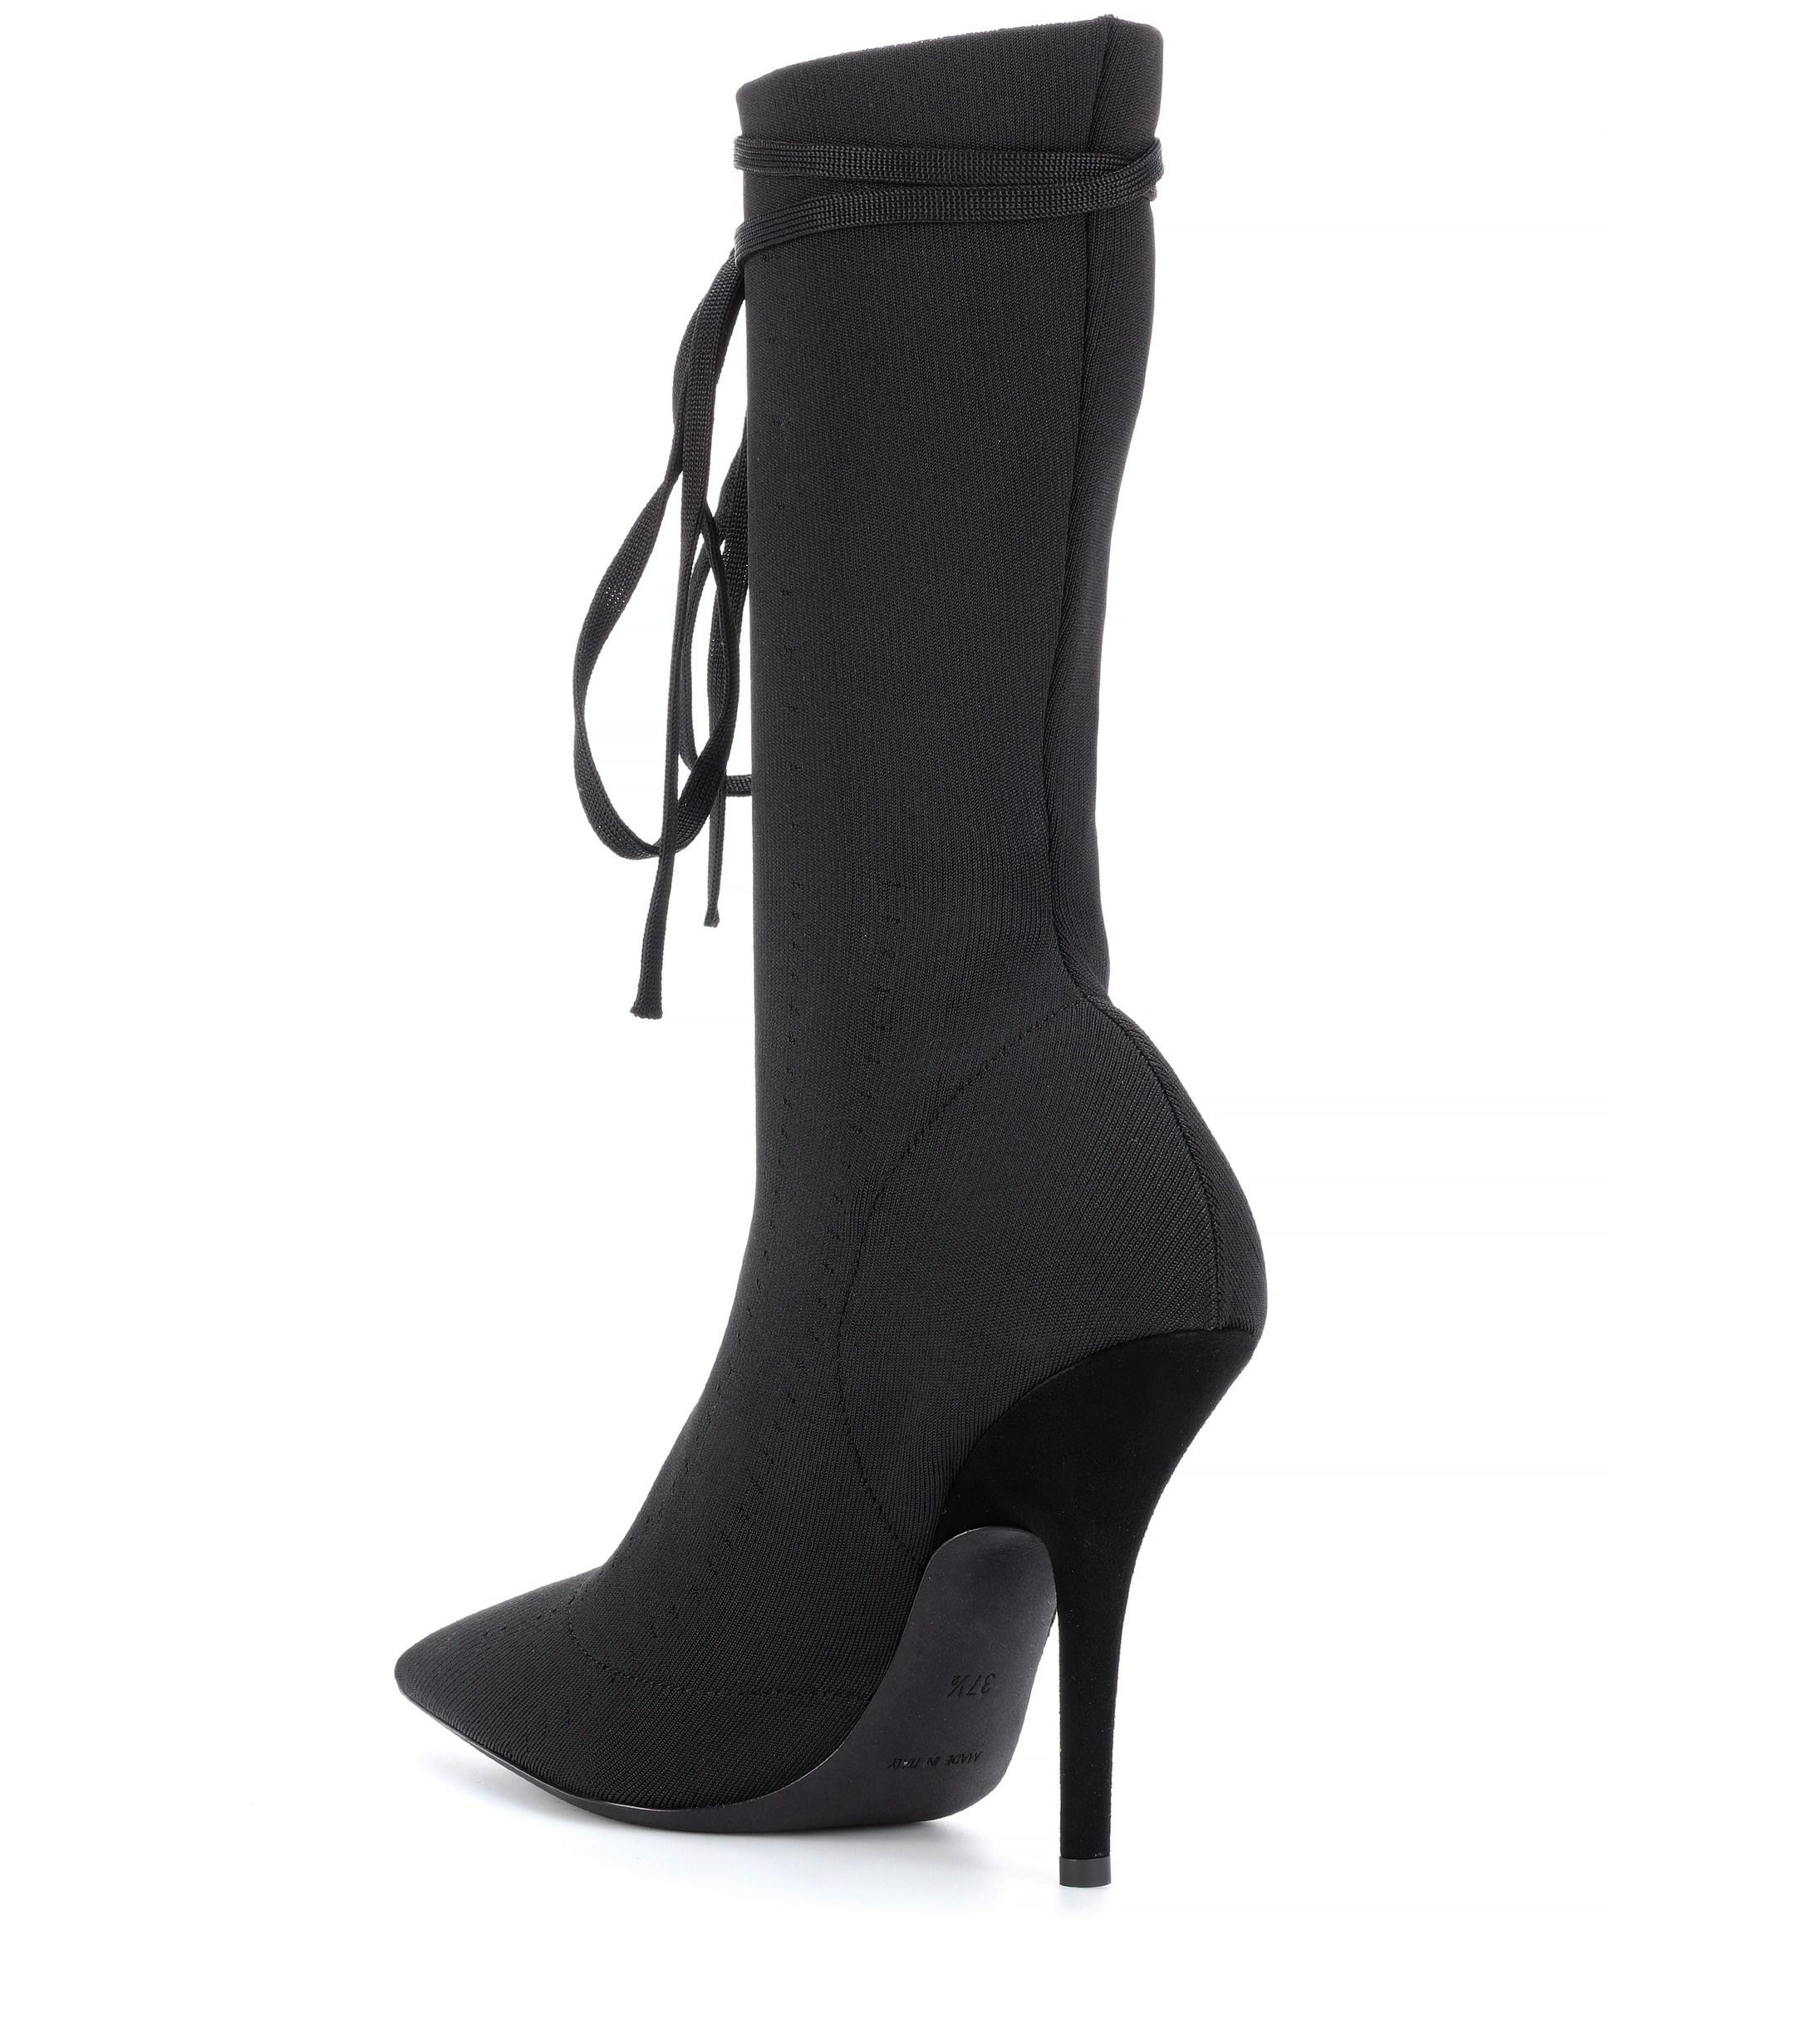 2a2824dd838 Yeezy - Black Lace-up Knit Ankle Boots (season 5) - Lyst. View fullscreen